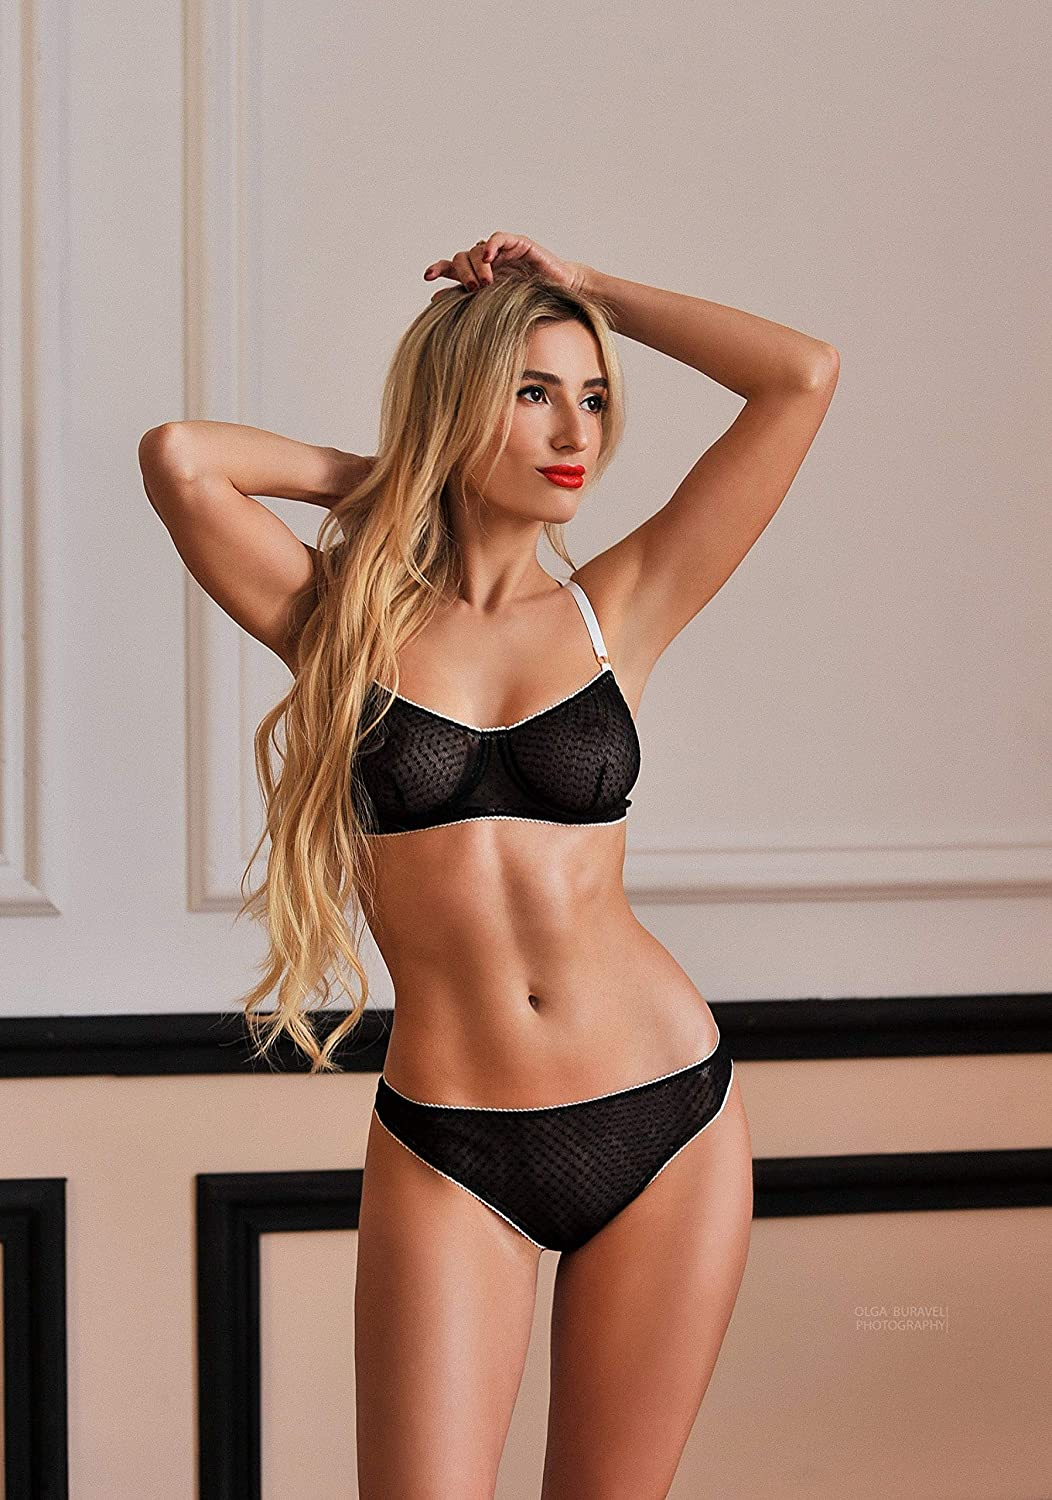 6e79bfb8ca5 Black lingerie set with white edging ⇼ black erotic lingerie ⇼ sexy  underwear ⇼ balcony bra and string panties ⇼ black lingerie with white  edging